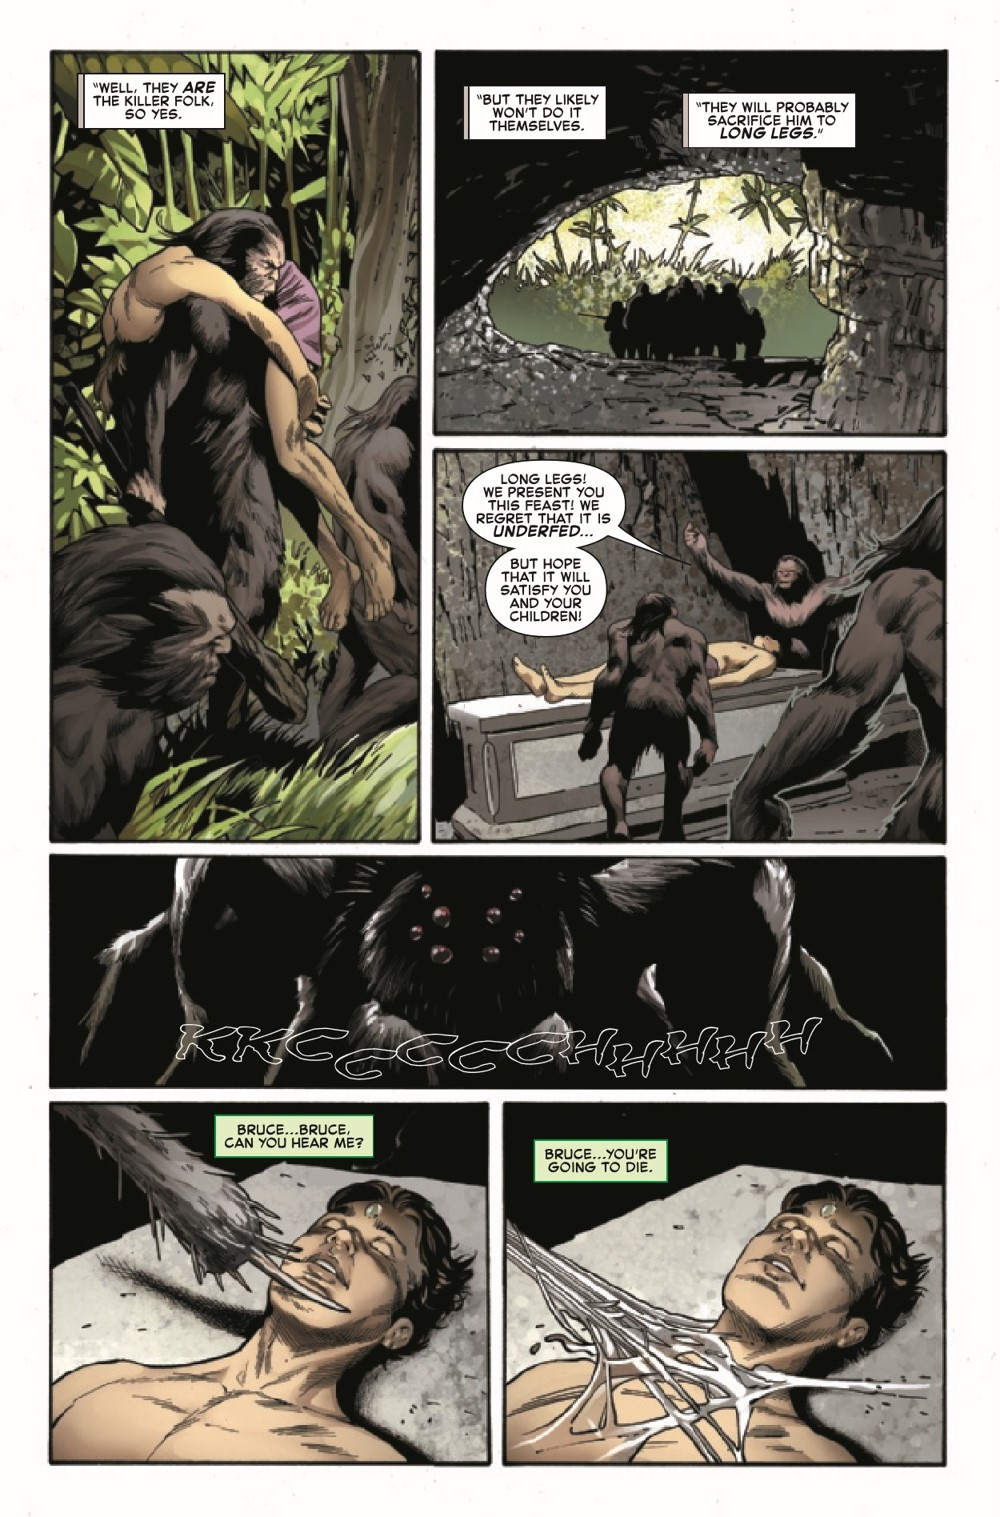 SYMBIOTESMCR2021003_Preview-4 ComicList Previews: SYMBIOTE SPIDER-MAN CROSSROADS #3 (OF 5)